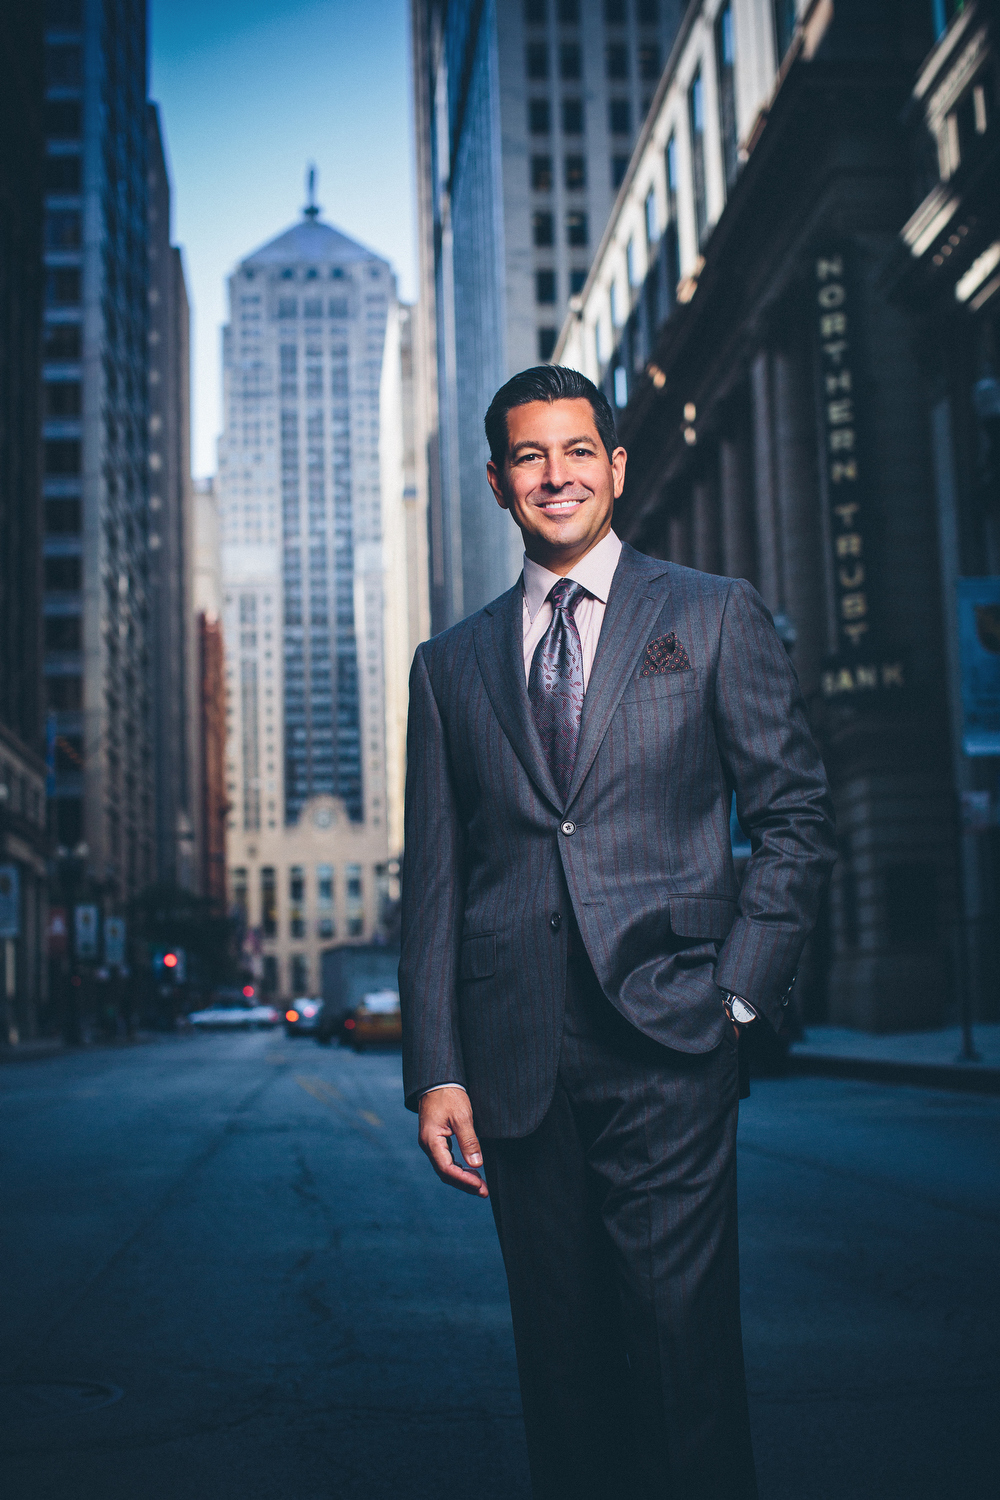 LaSalle Street Executive Portrait